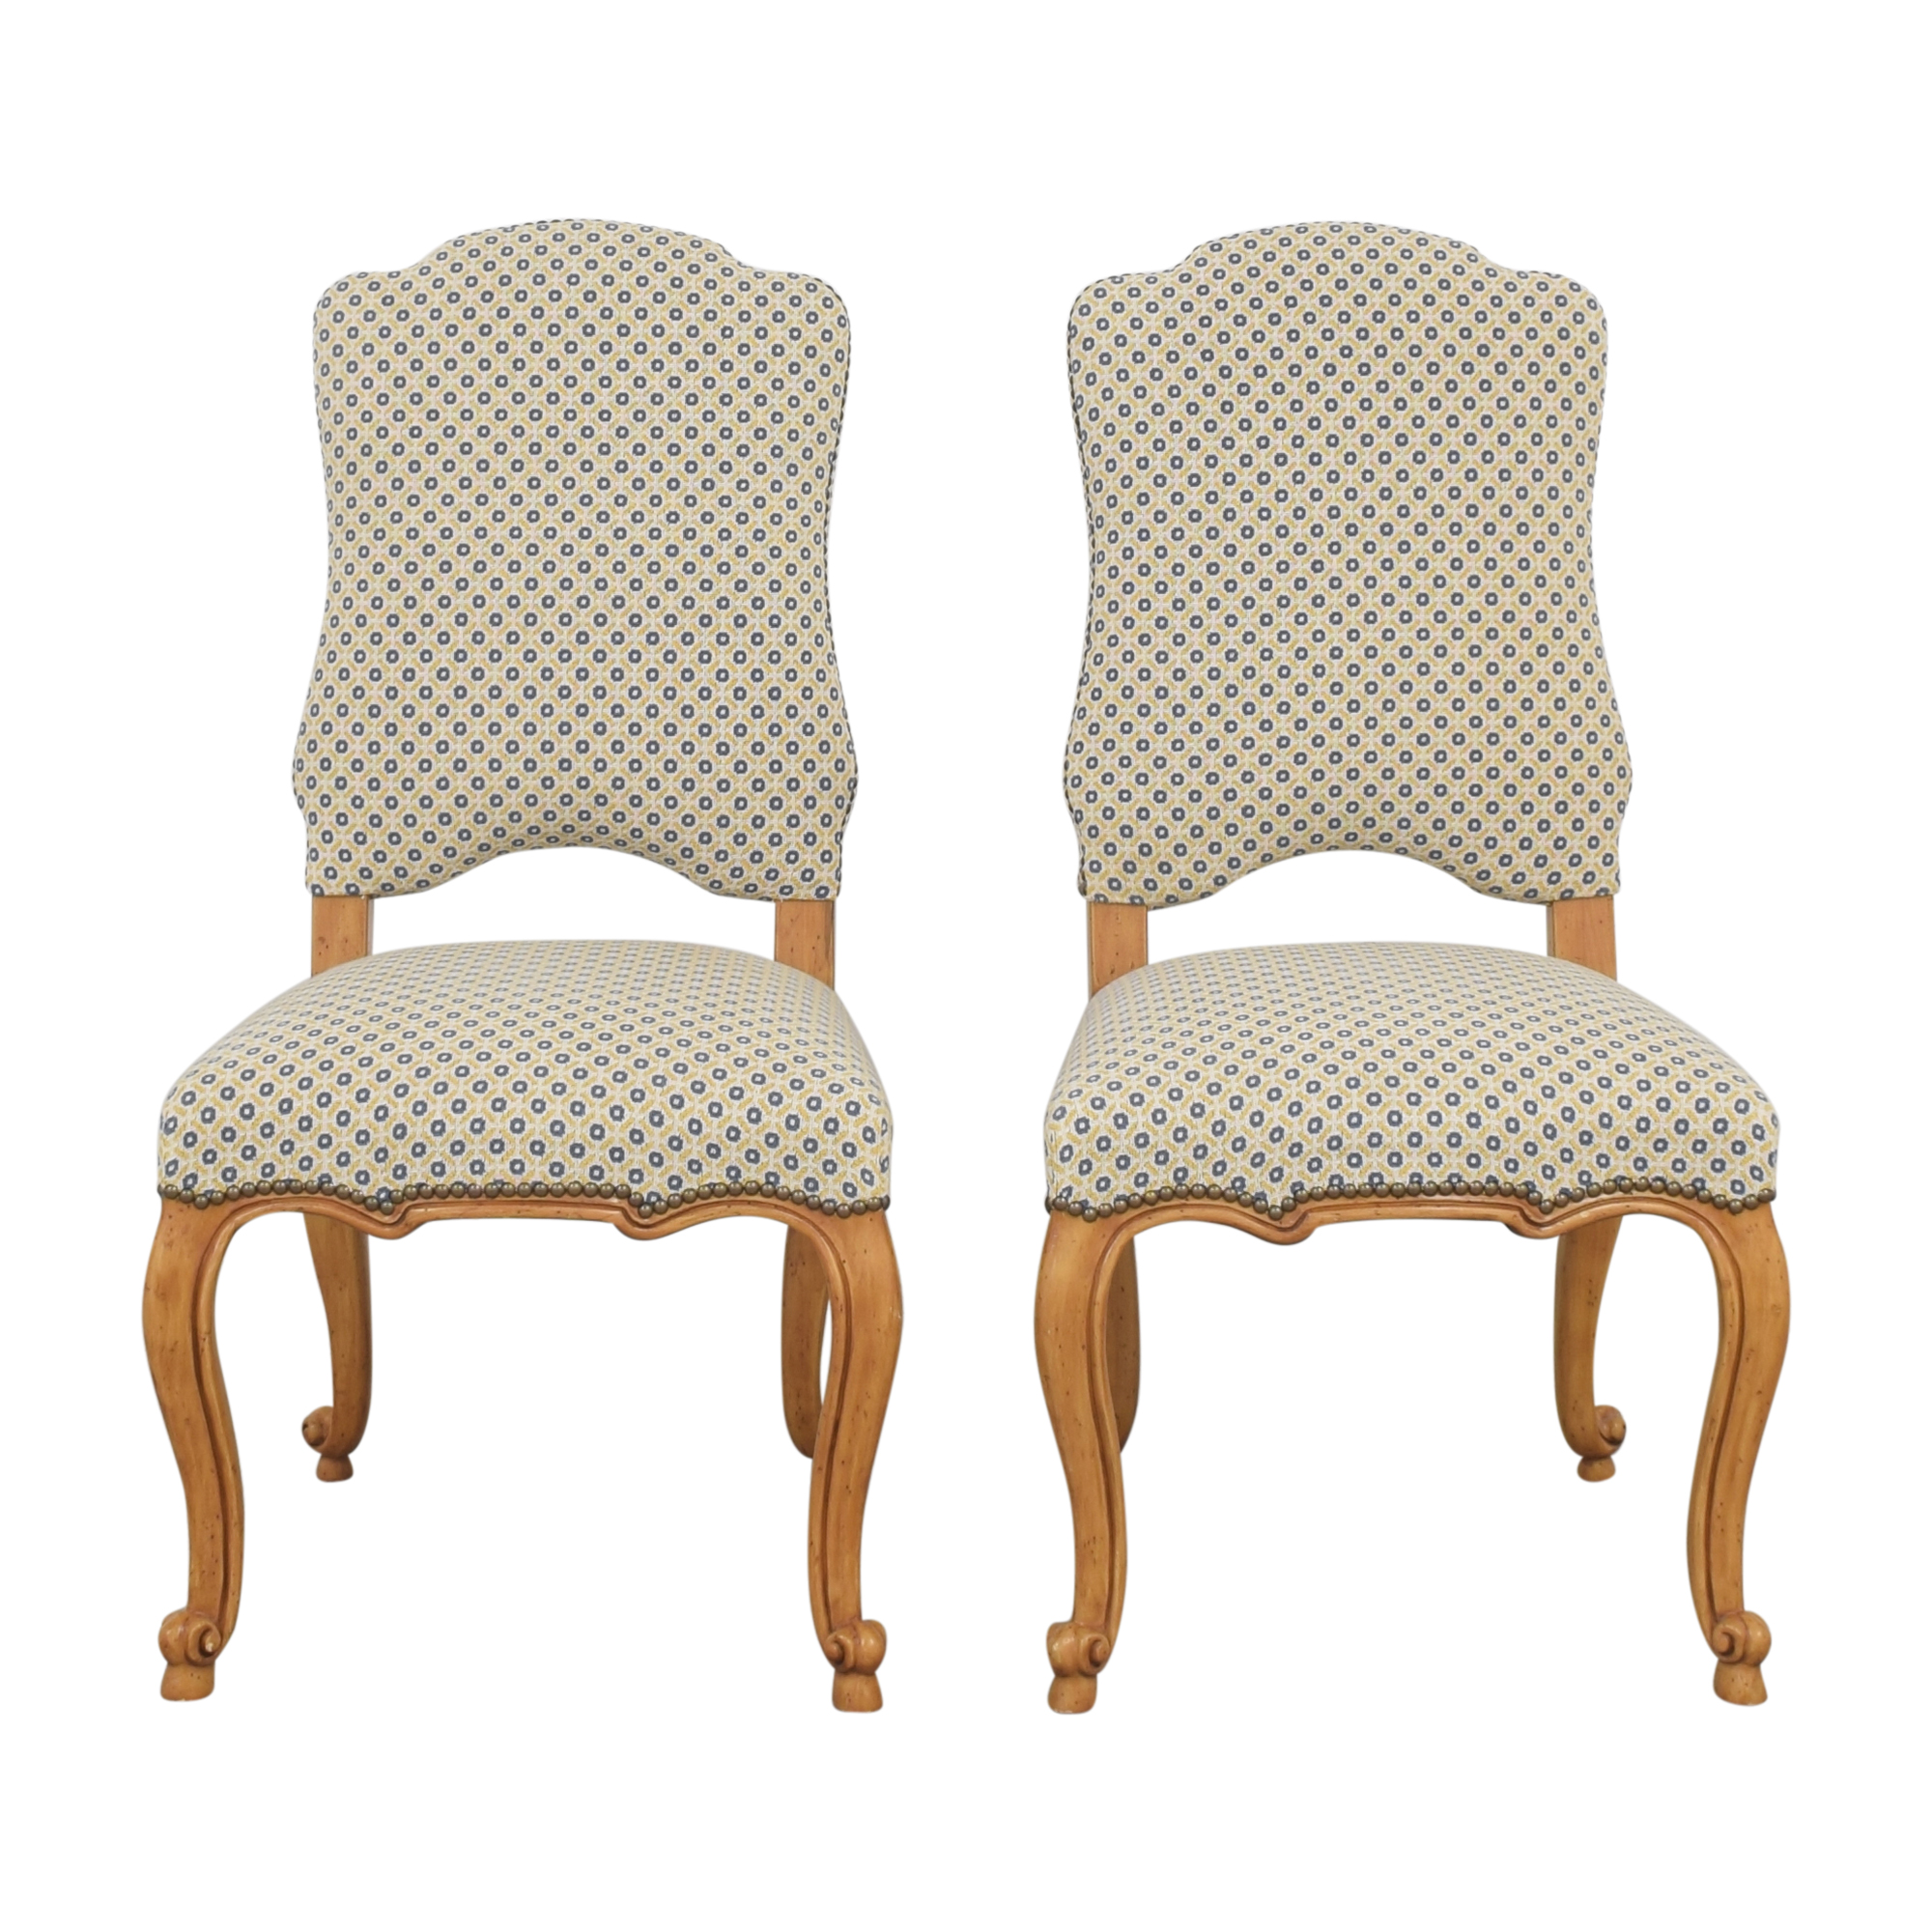 Minton-Spidell Minton-Spidell Regence Dining Side Chairs used